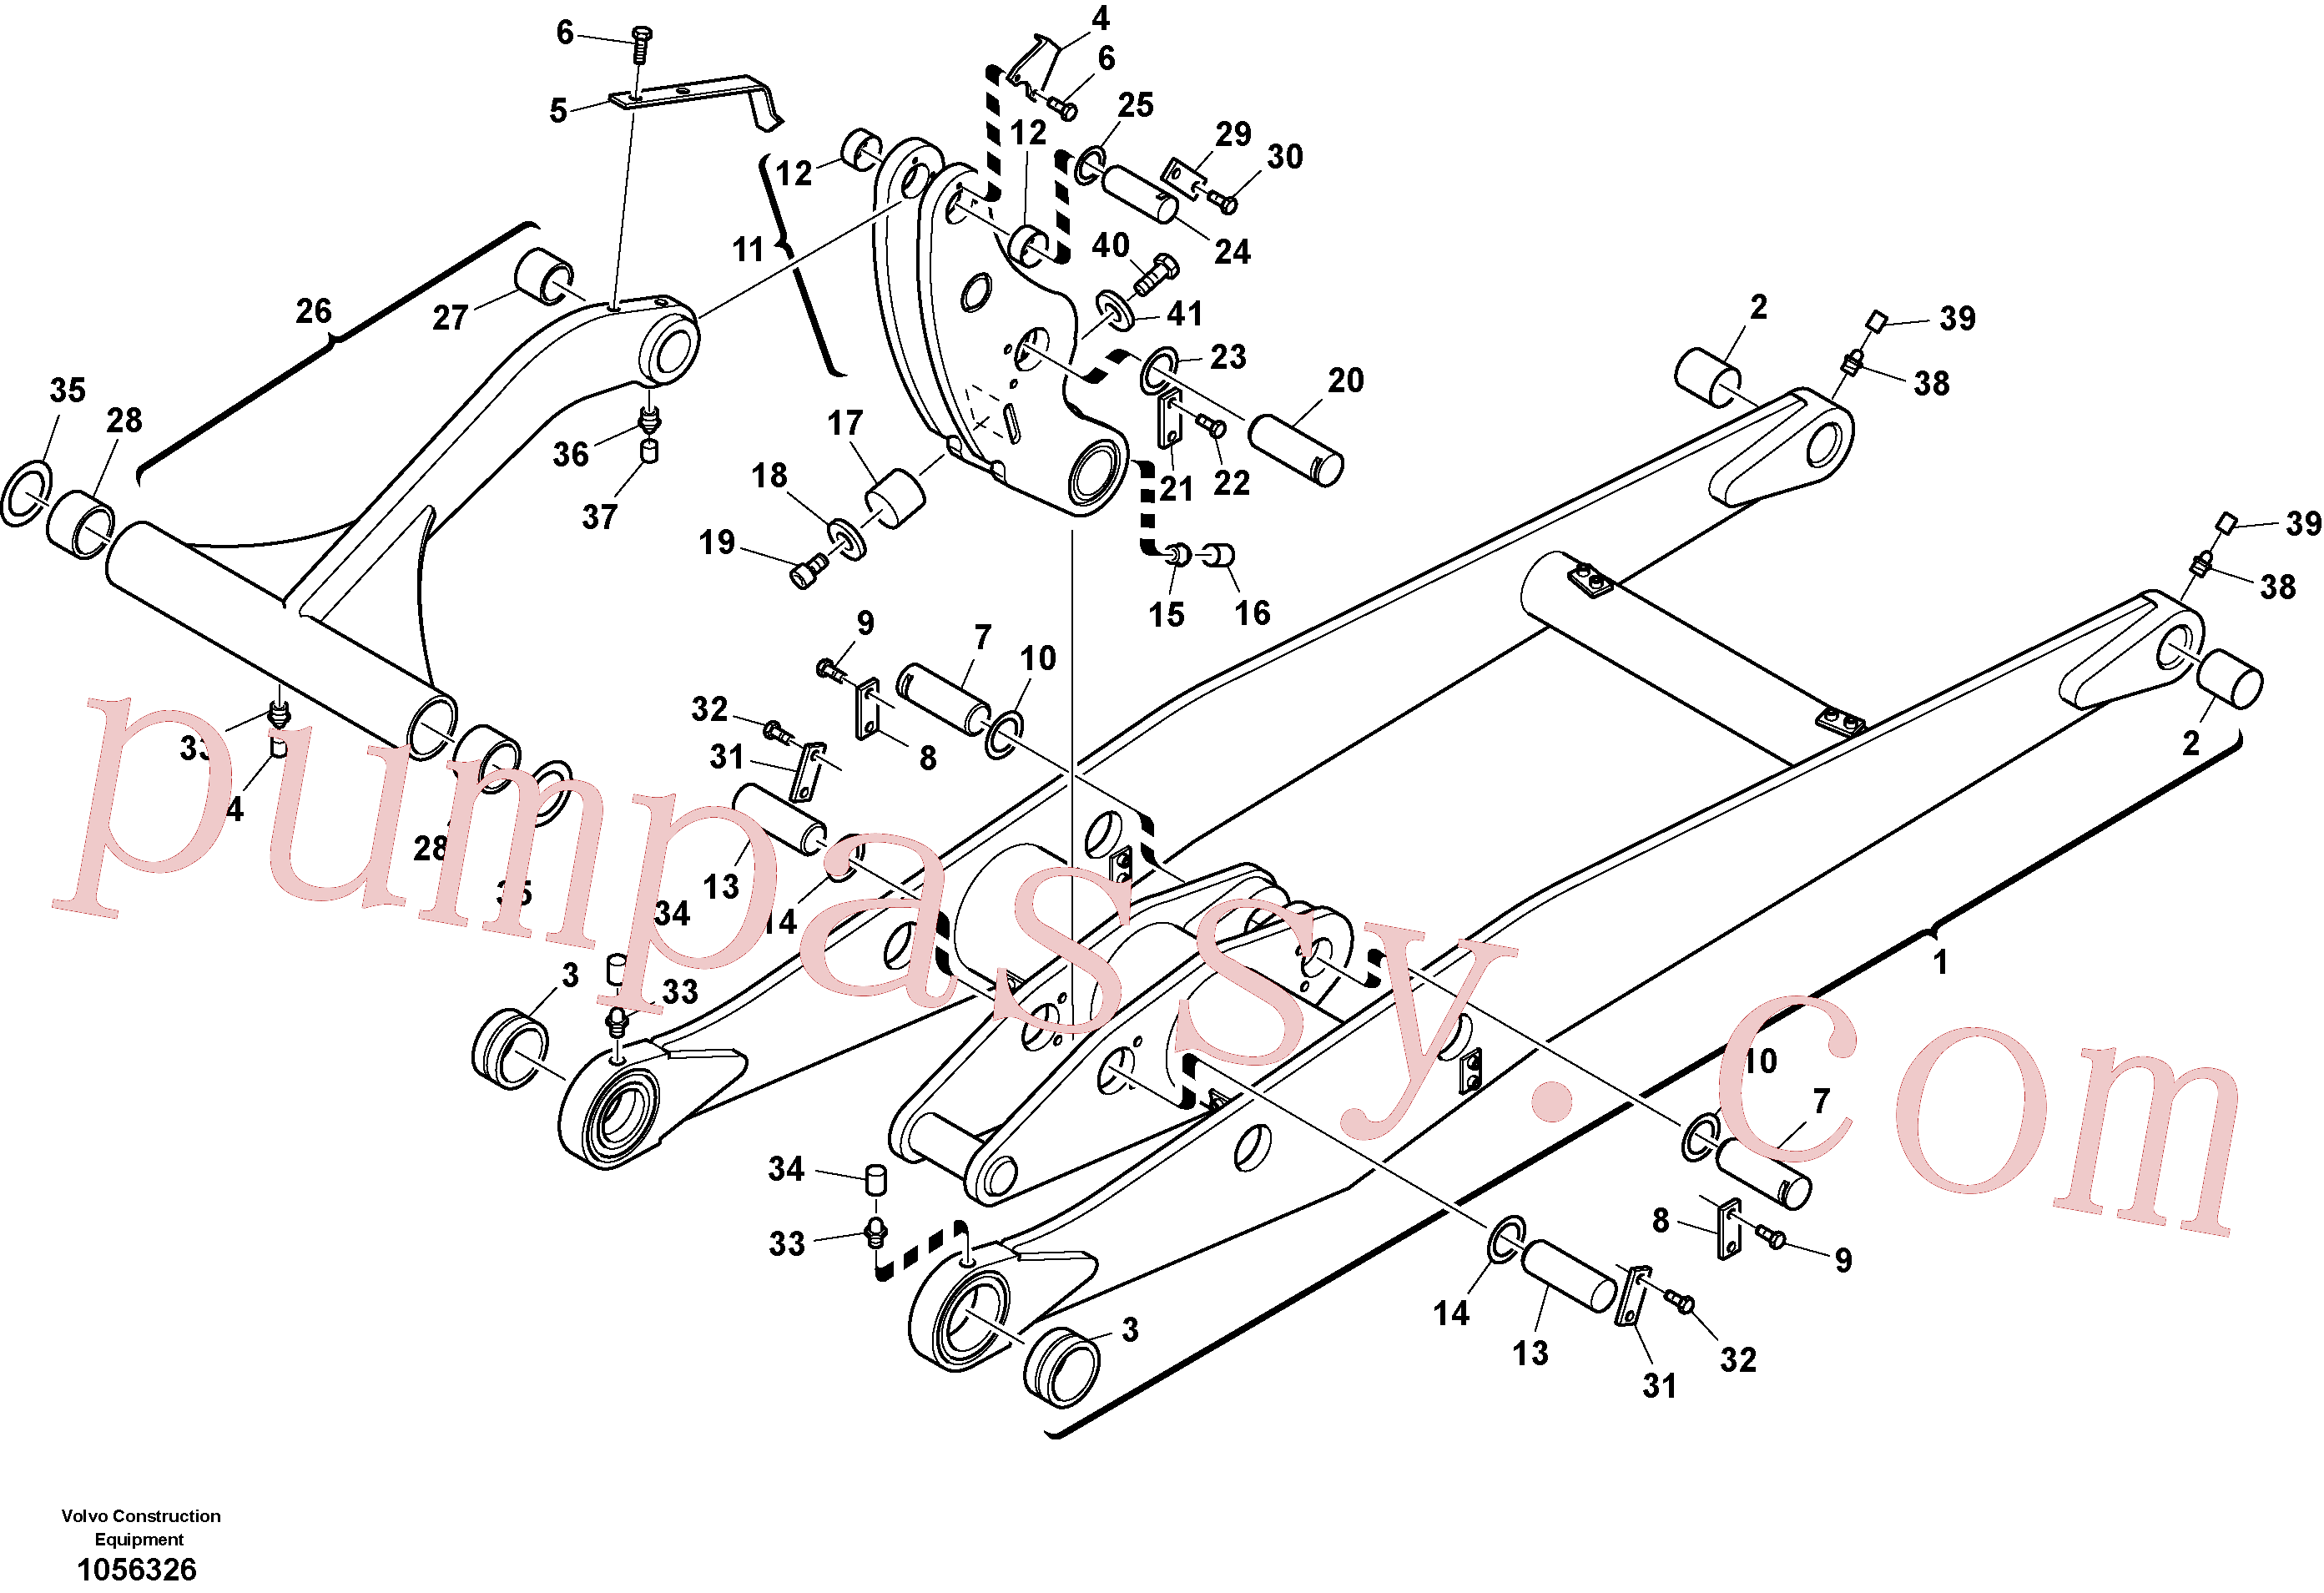 VOE11305013 for Volvo Lifting framework with assembly parts(1056326 assembly)